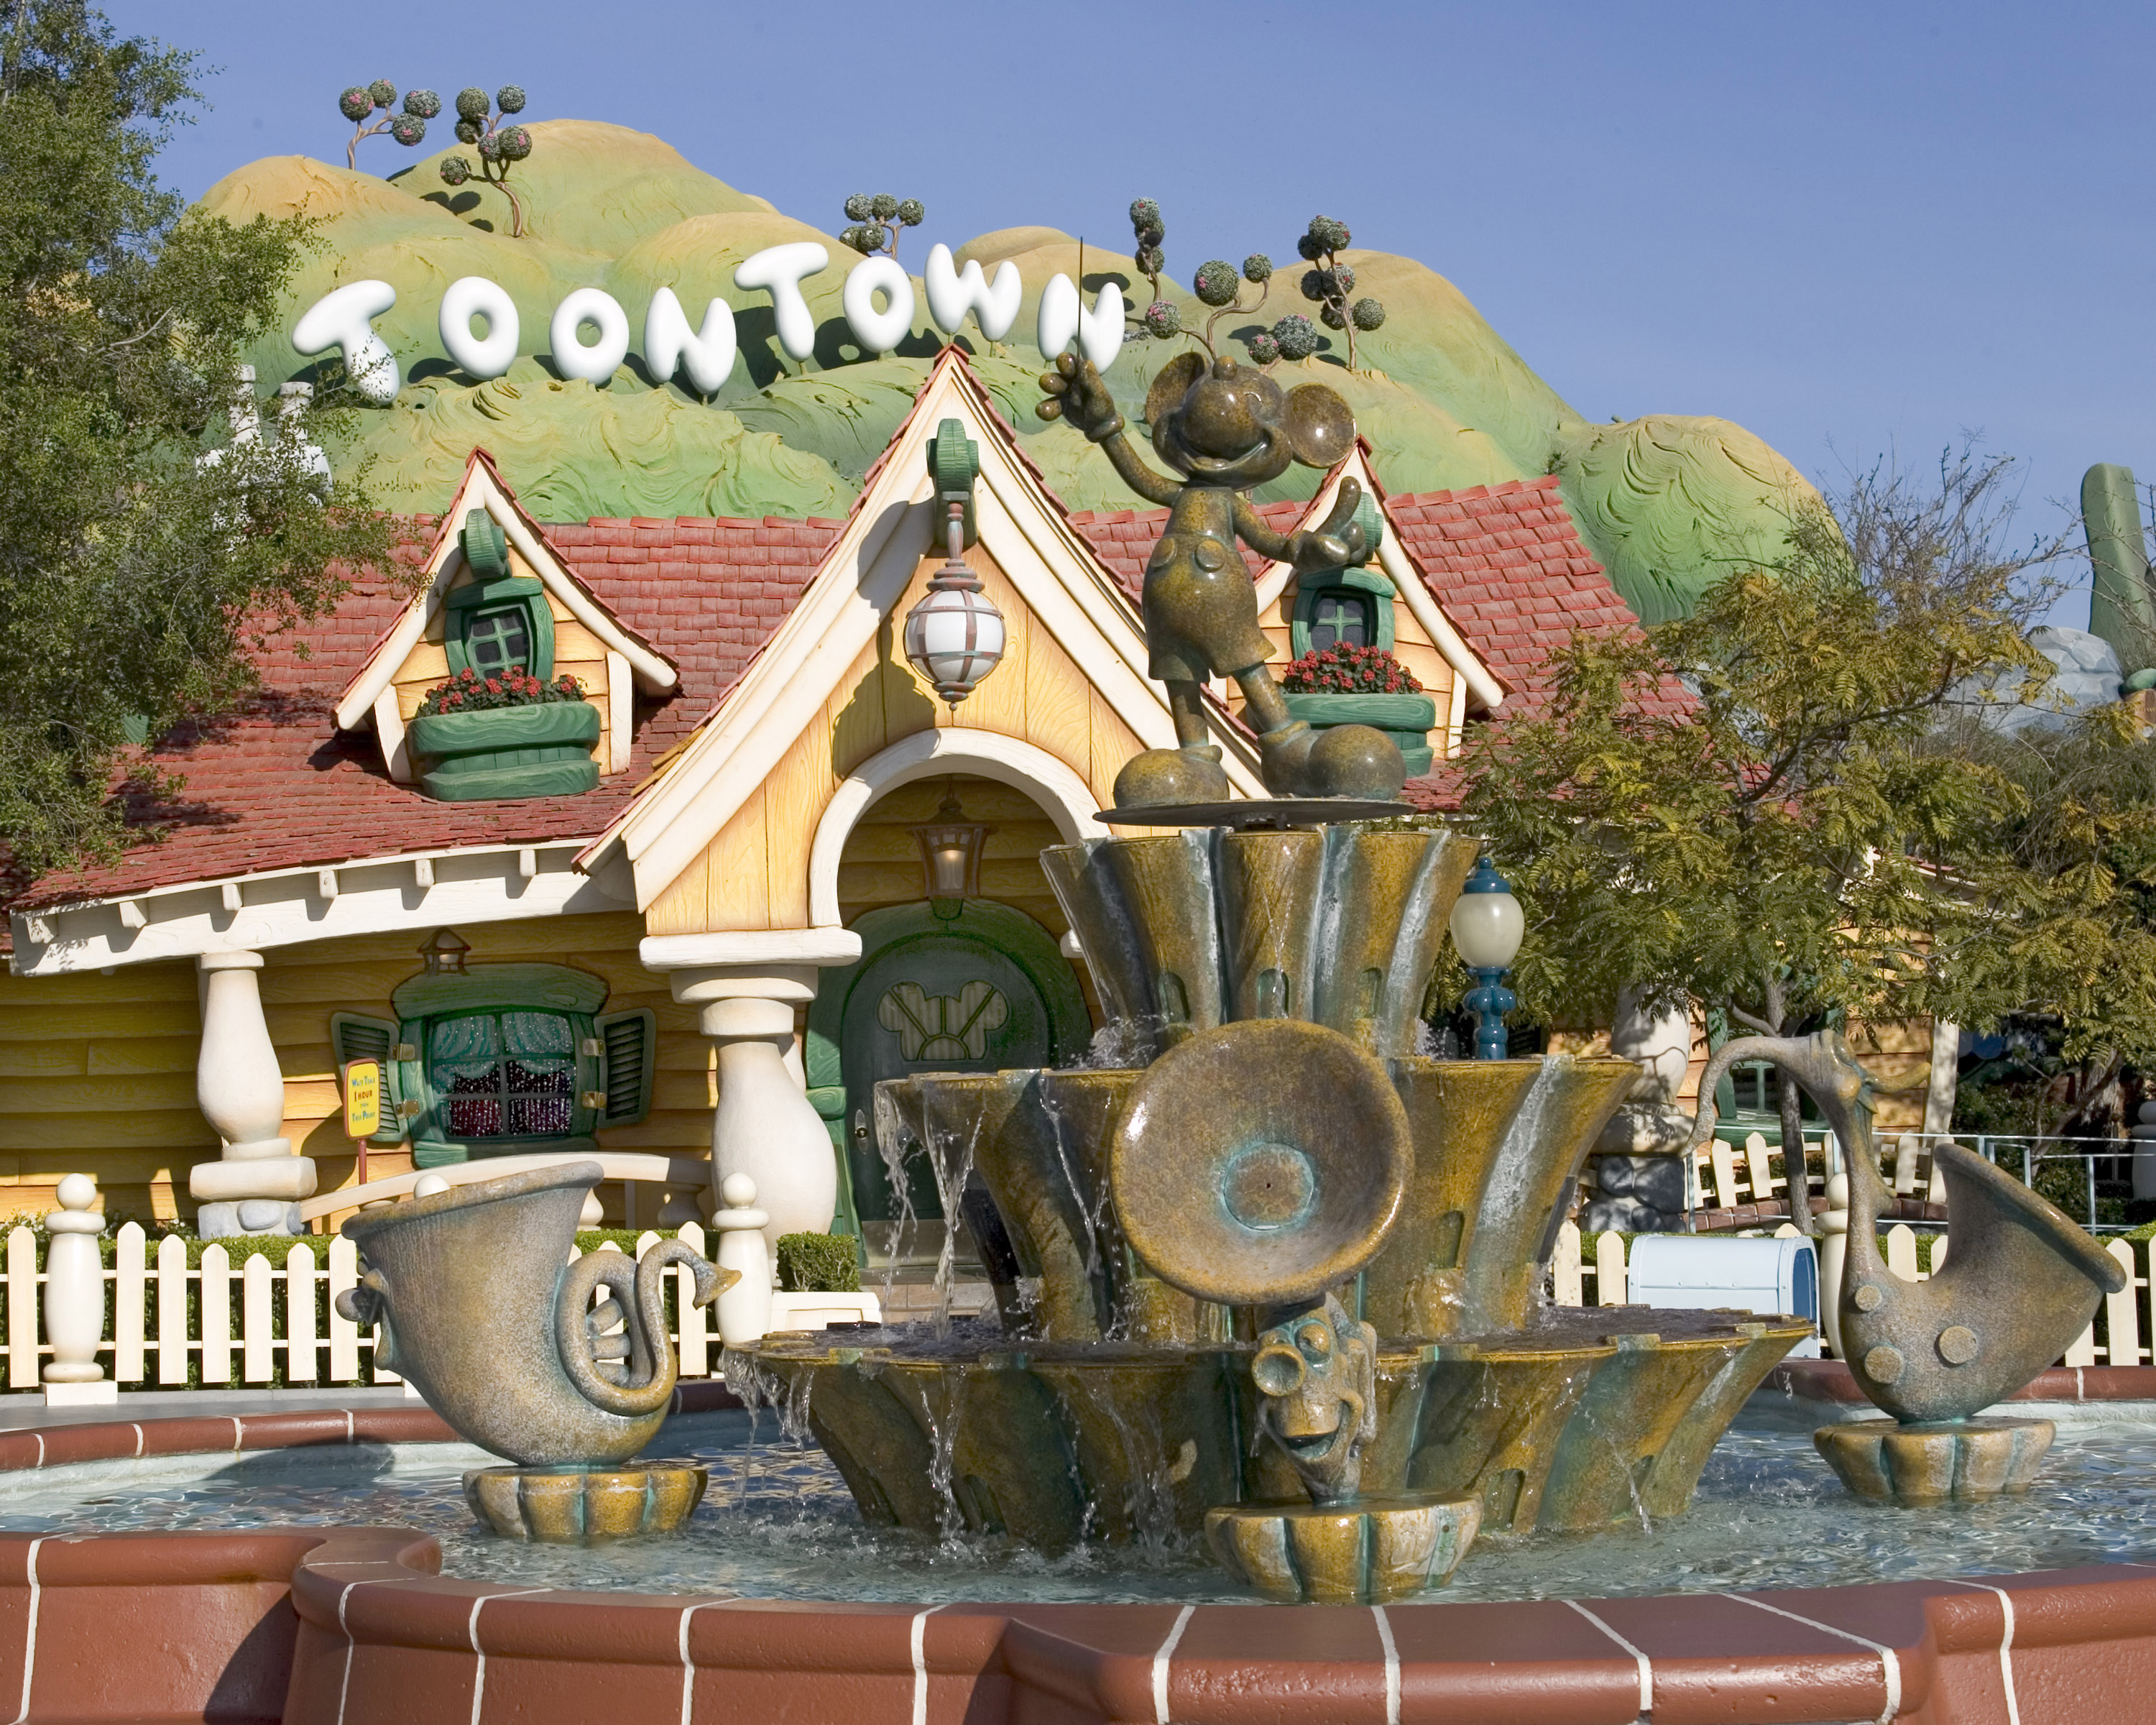 Top 6 Rides and Attractions for Preschoolers at Each Disneyland Theme Park